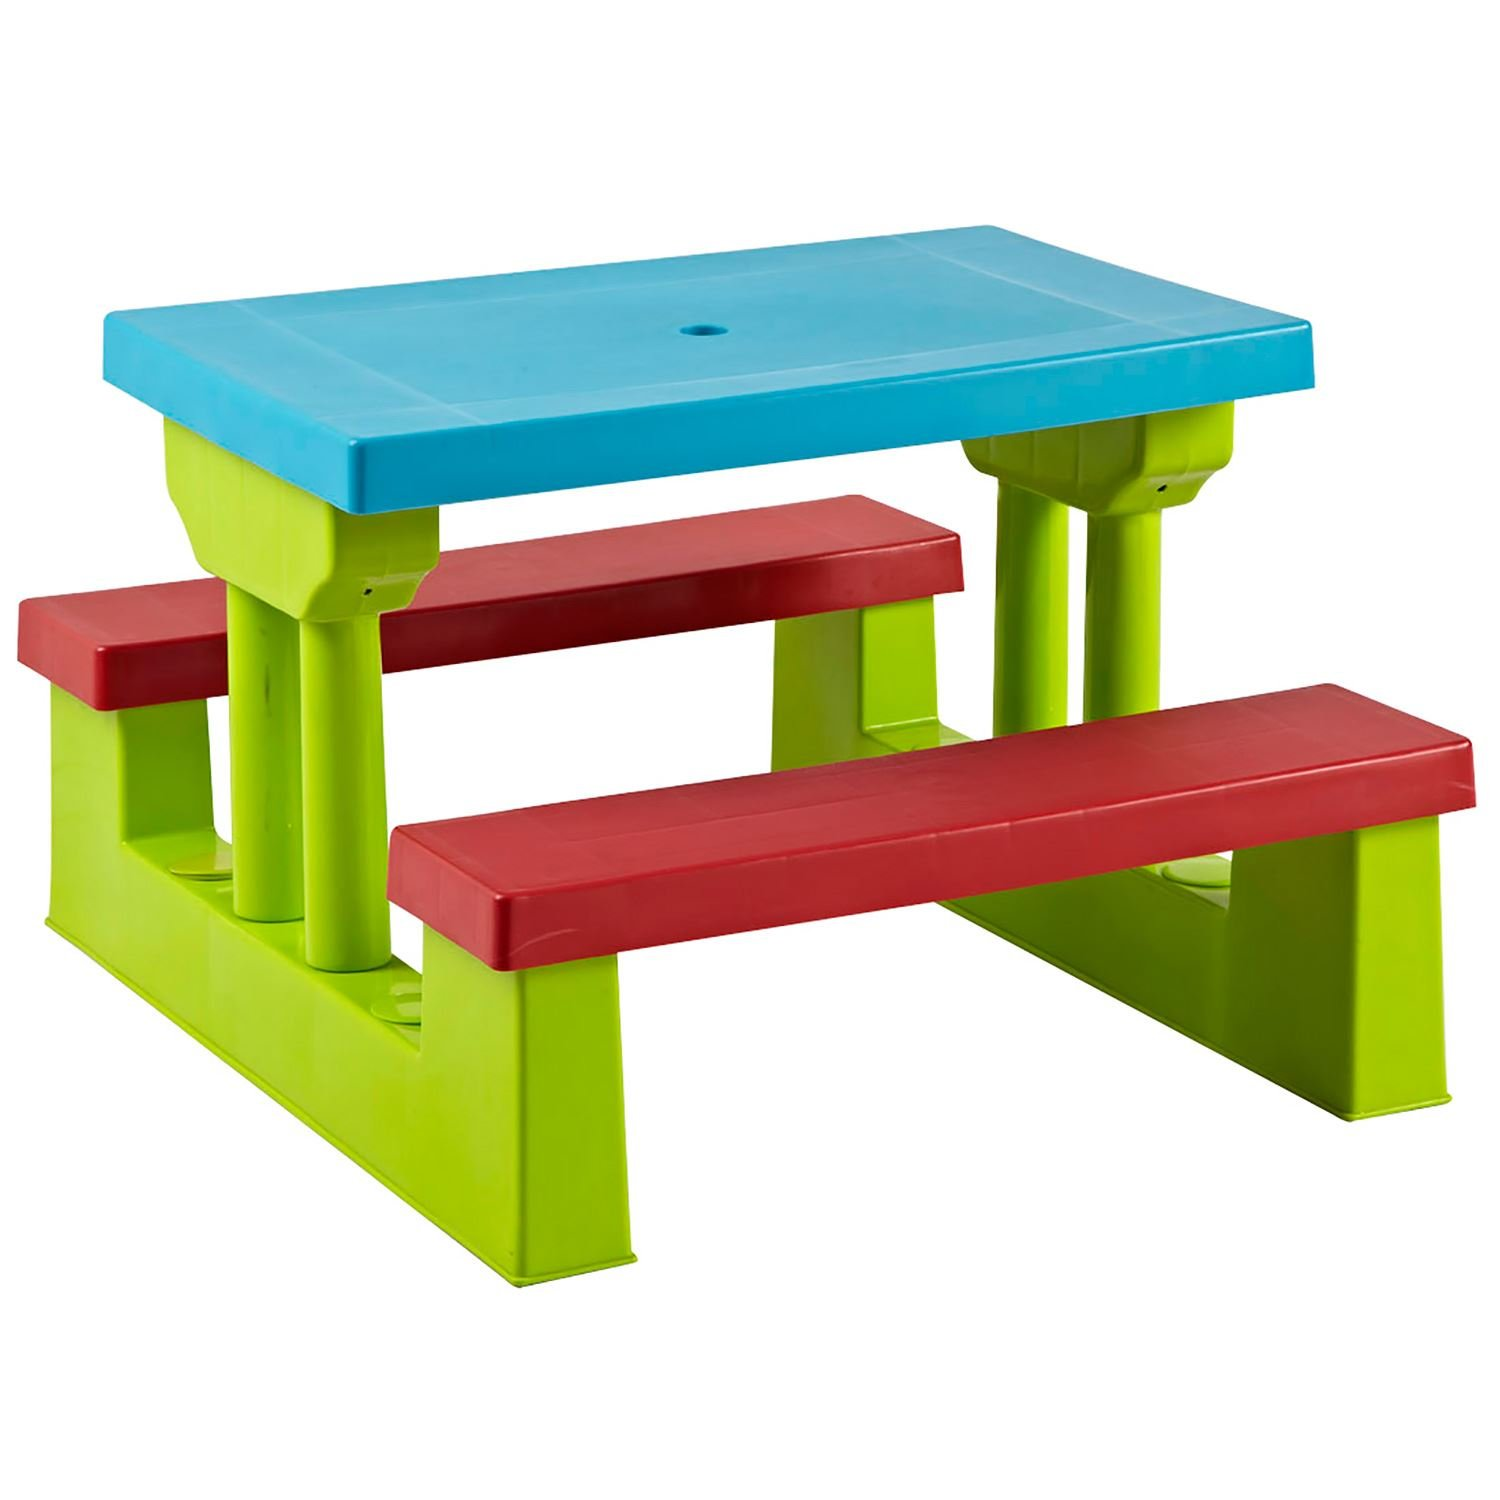 Parkland Colourful Kids Children Picnic Table & Bench Set: Amazon.co ...